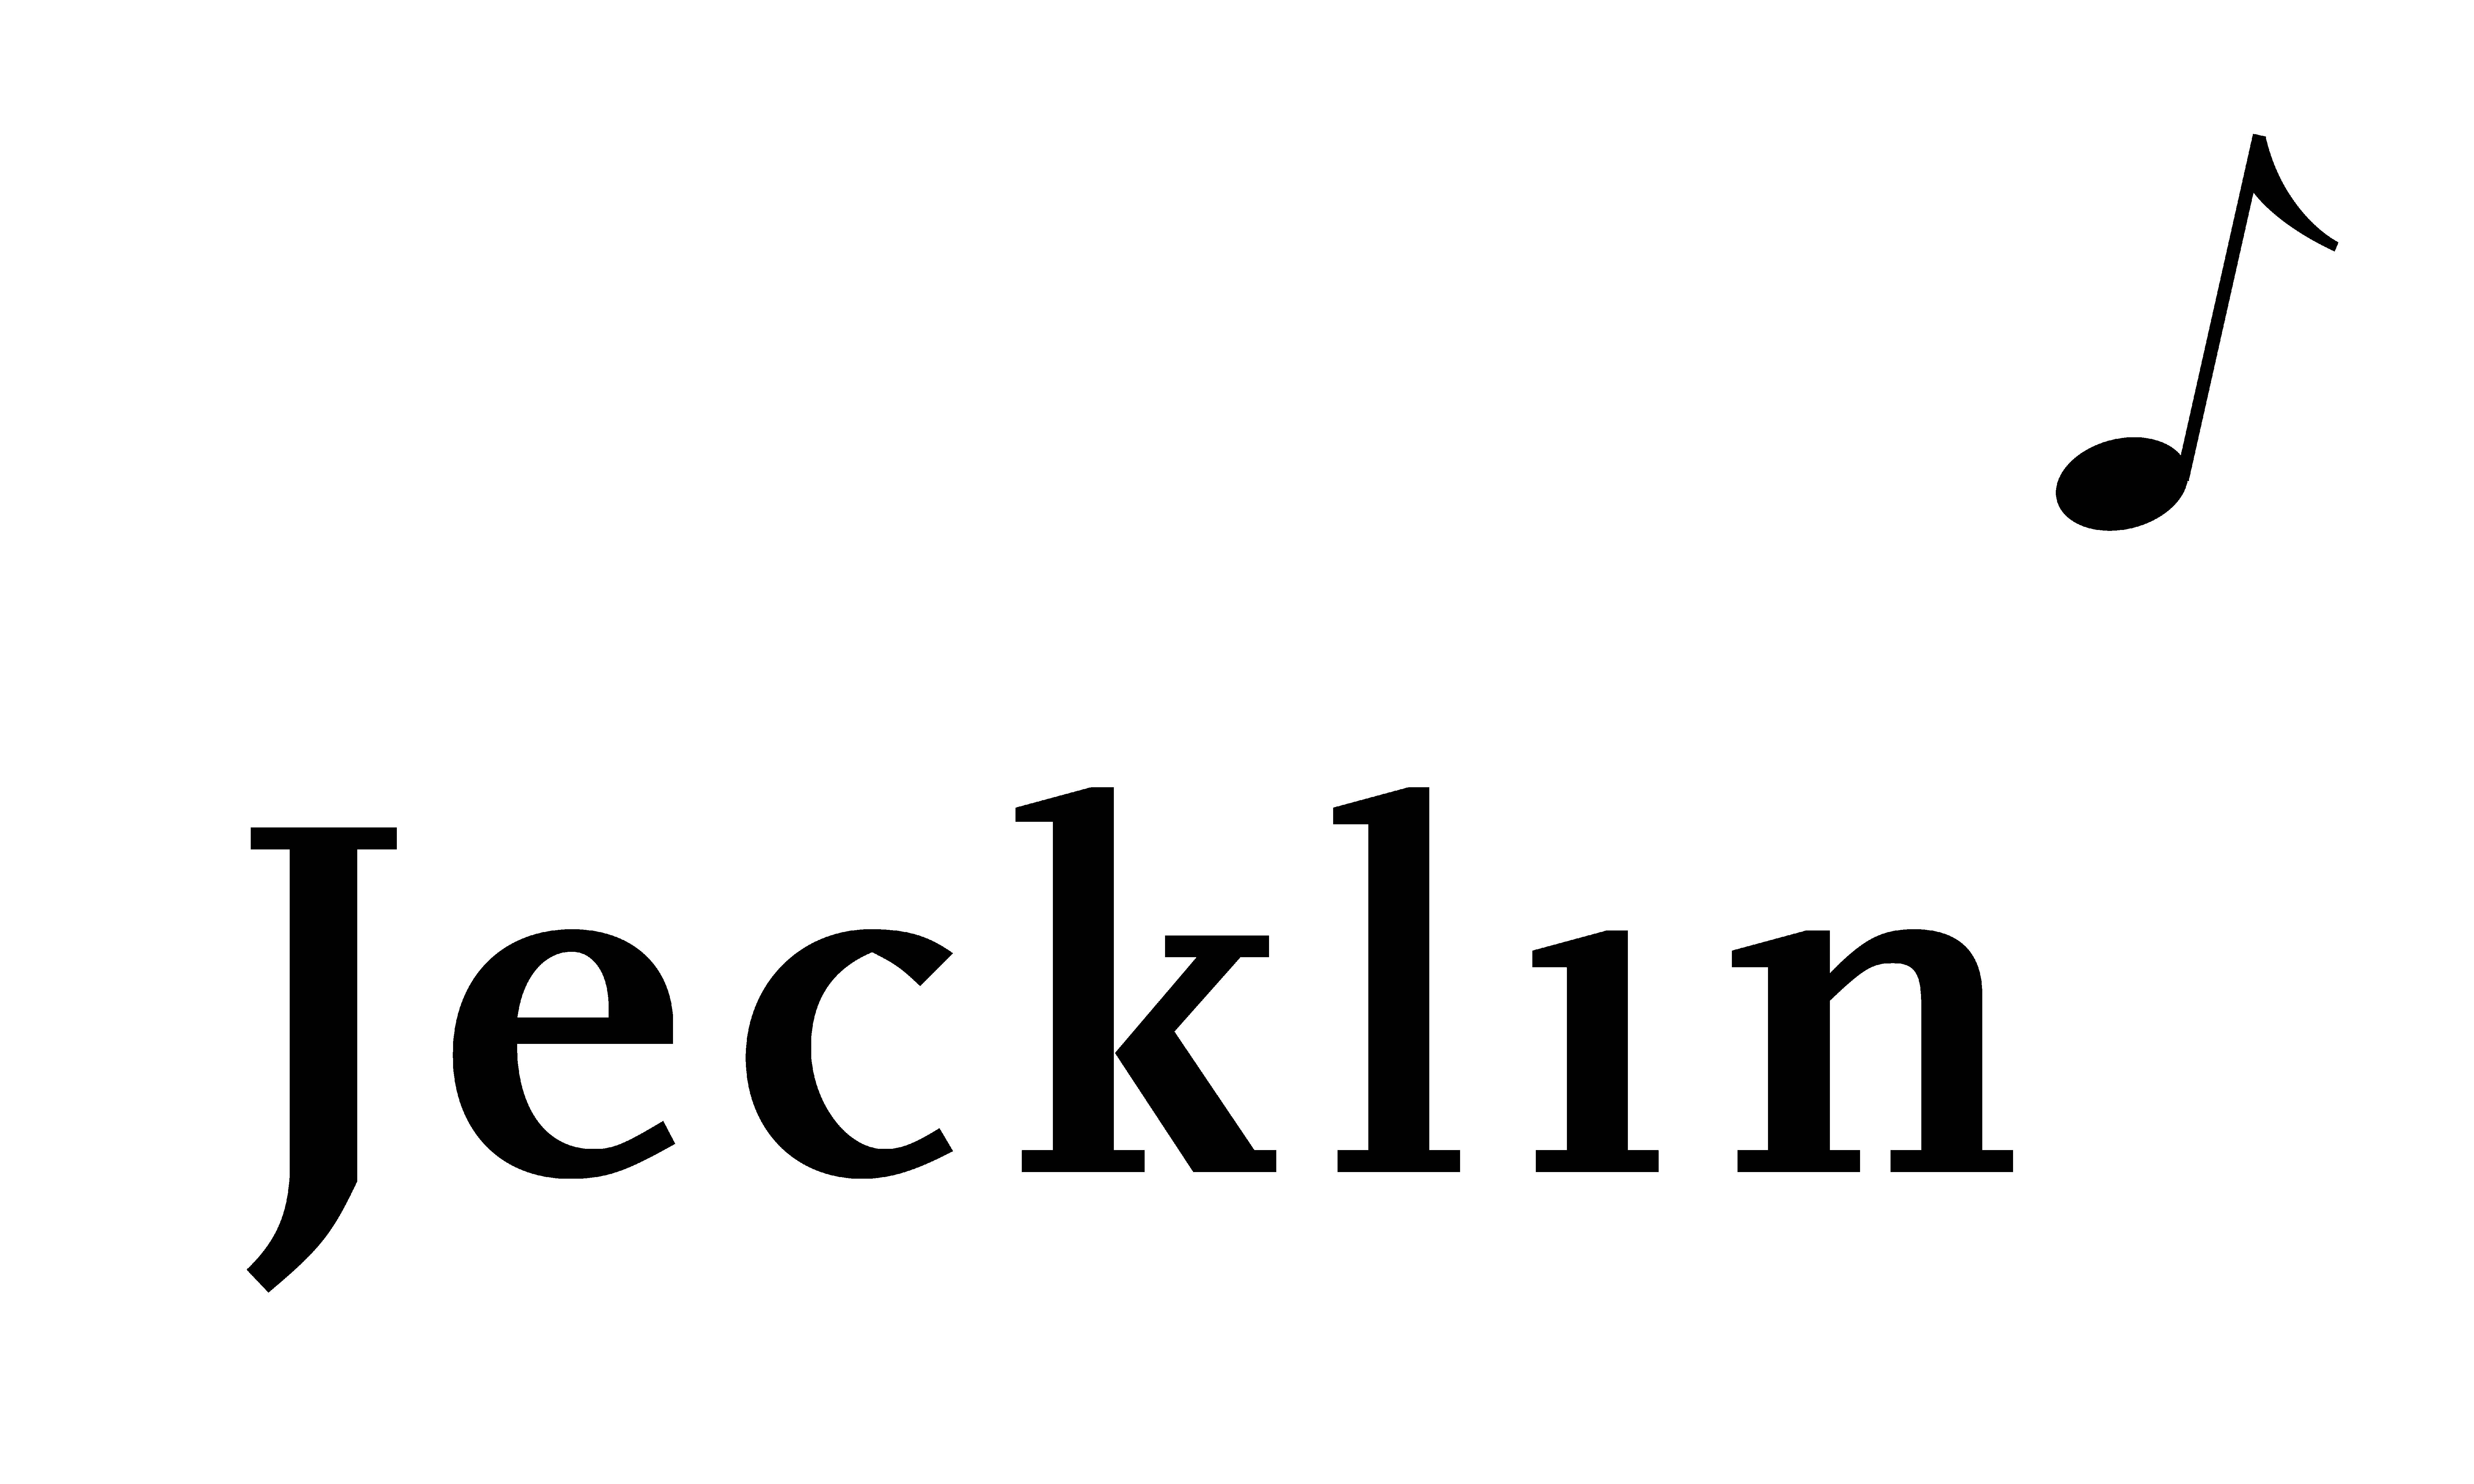 Jecklin & Co. AG